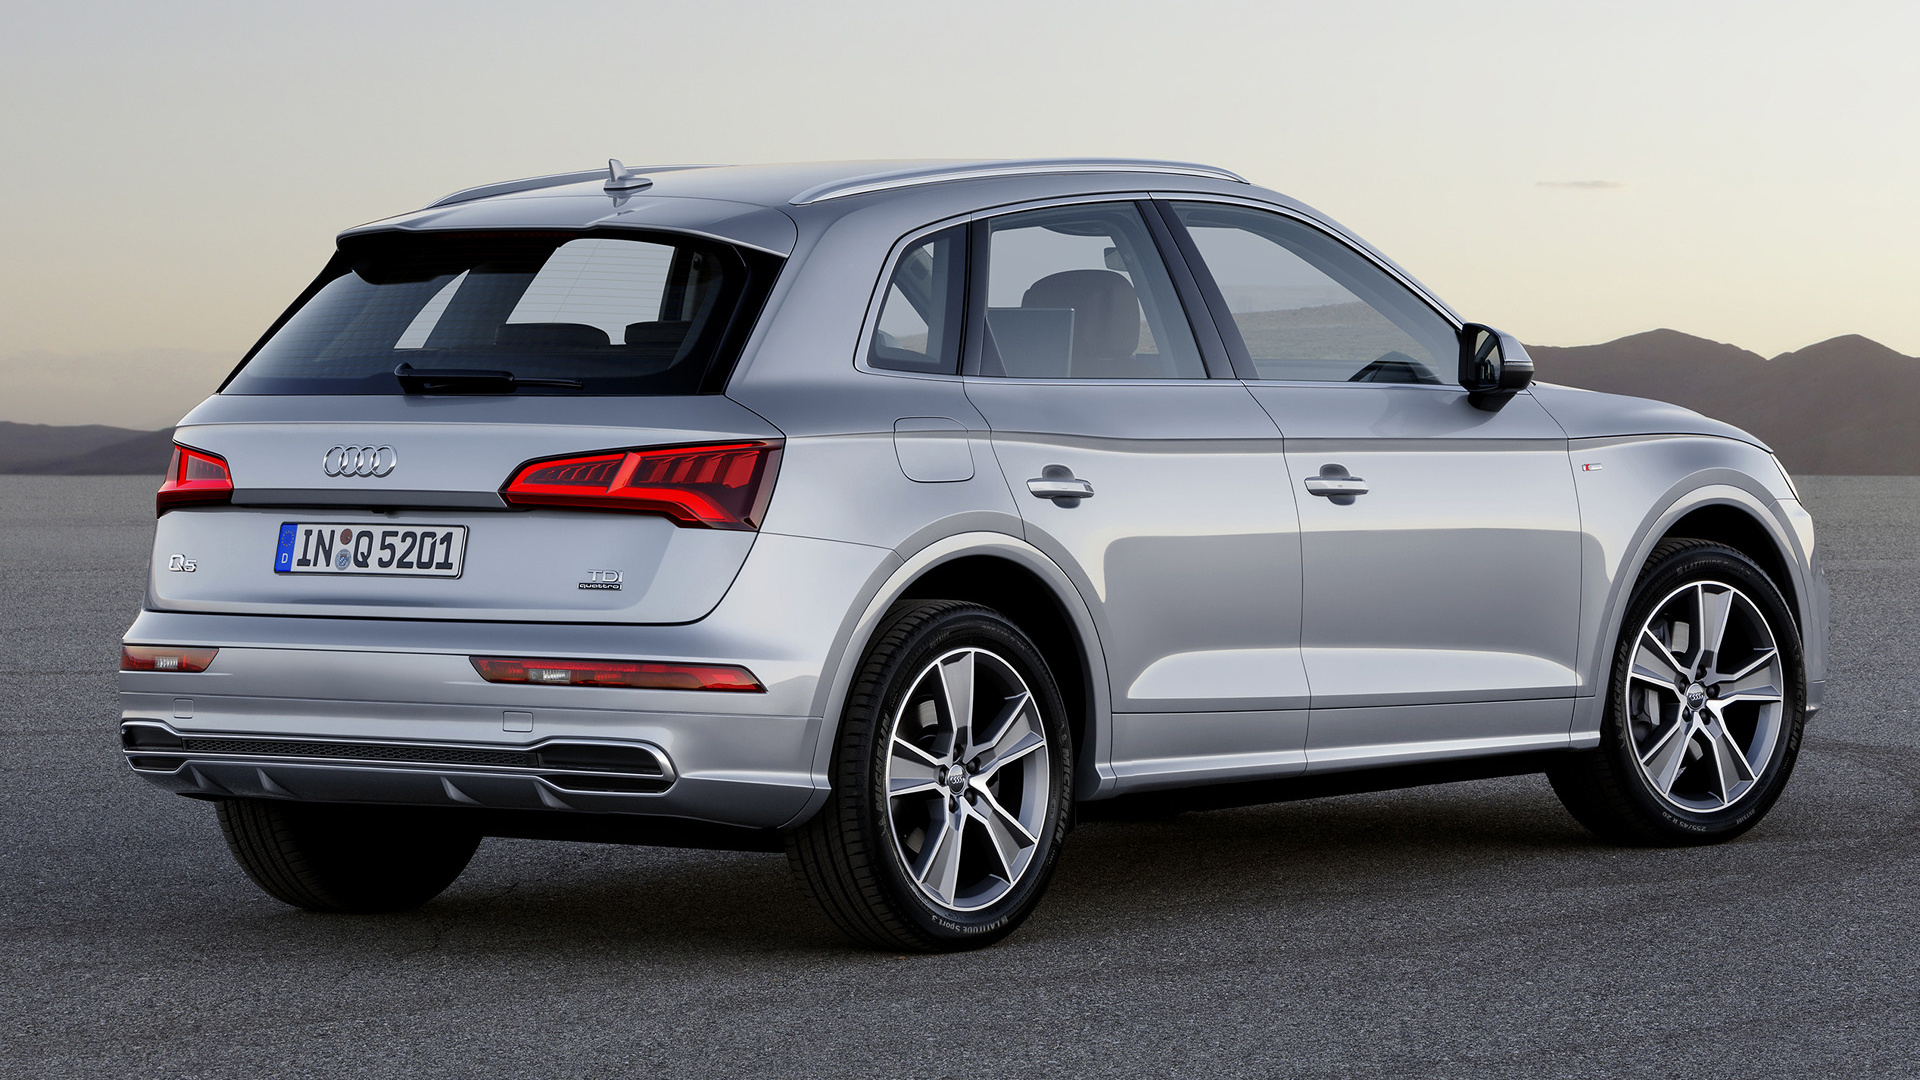 2017 audi q5 s line wallpapers and hd images car pixel. Black Bedroom Furniture Sets. Home Design Ideas